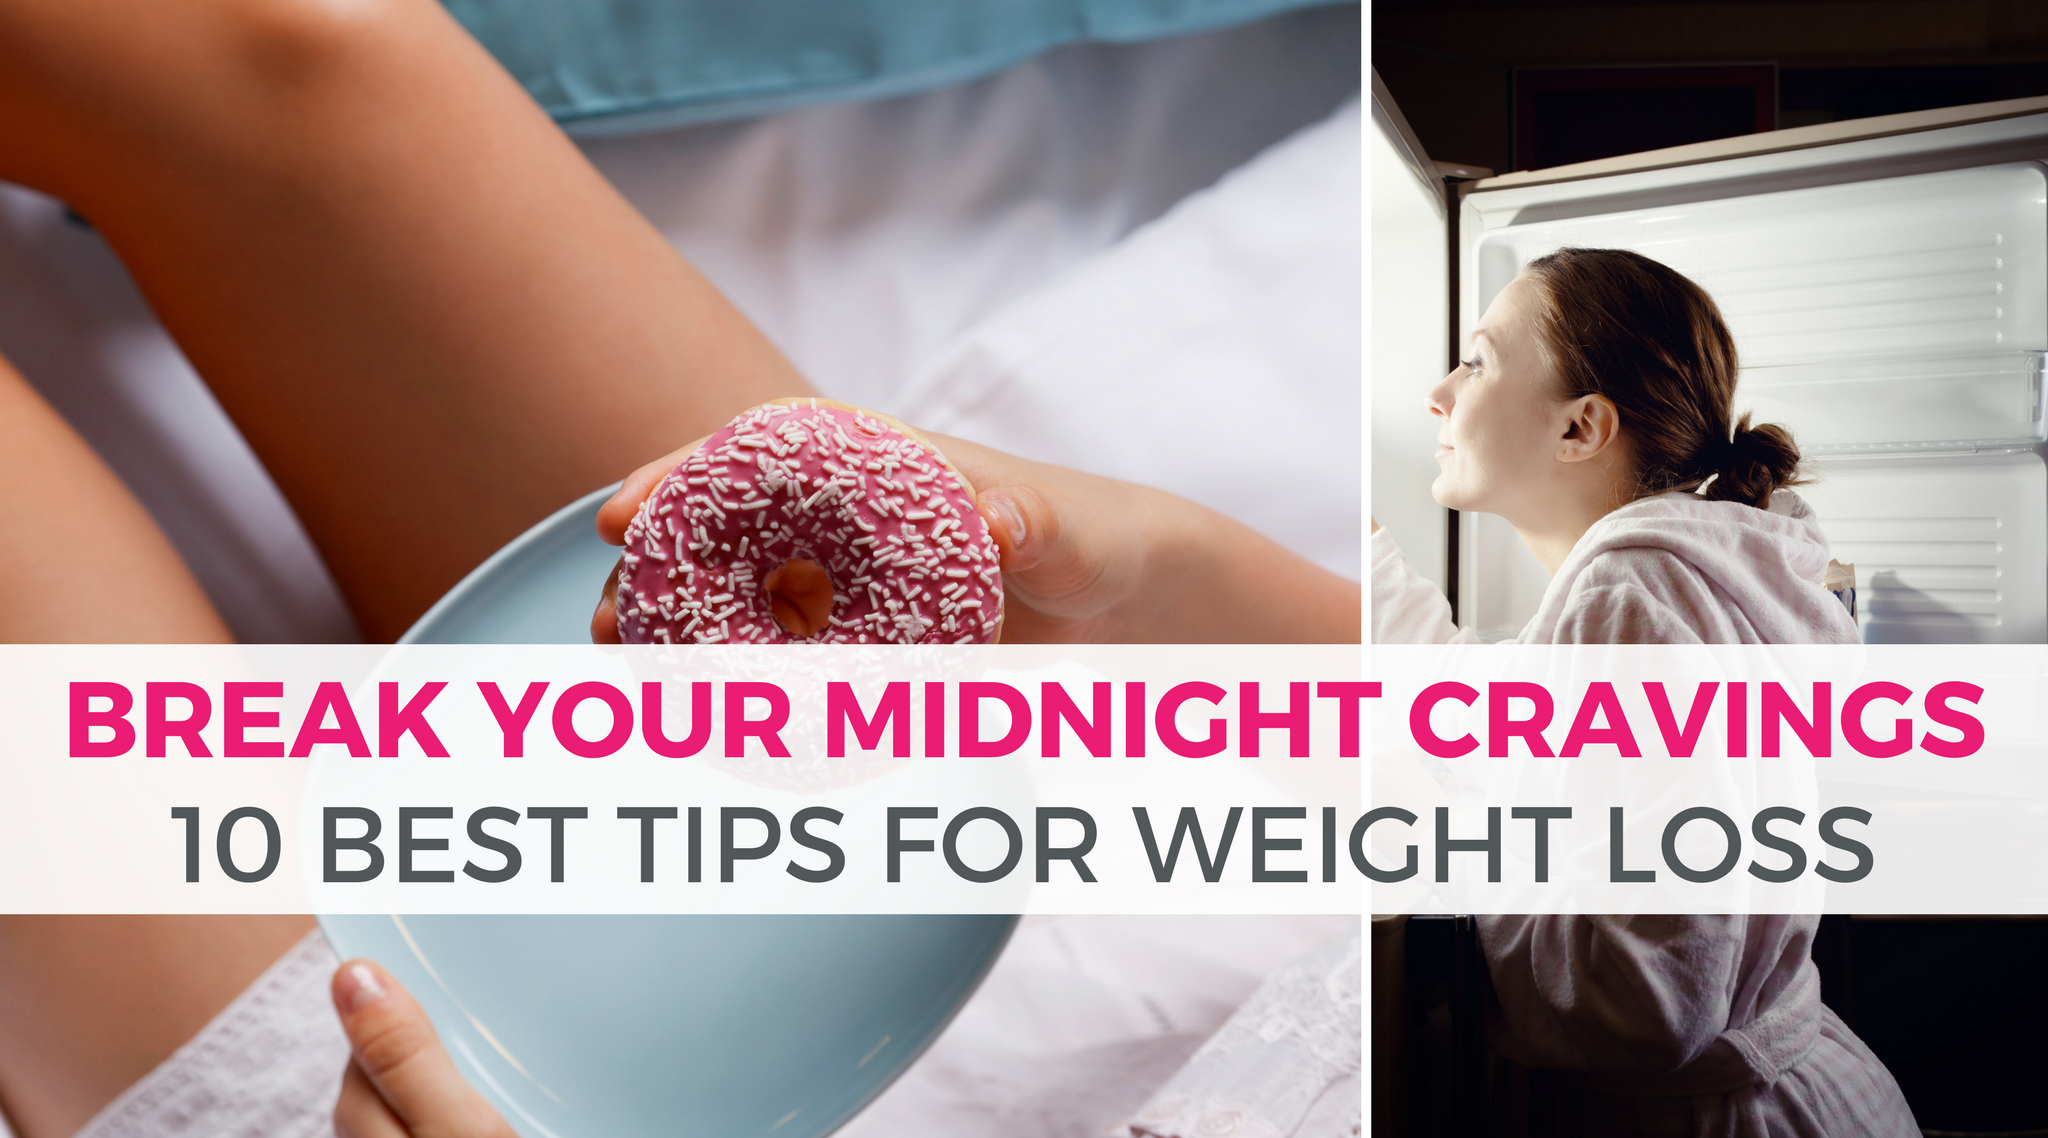 Break Your Midnight Cravings: 10 Best Tips for Weight Loss |  Eating late at night can lead to weight gain. So instead of spoiling your healthy eating plan with late night snacking, try these 10 easy ideas to help you curb those late night cravings!